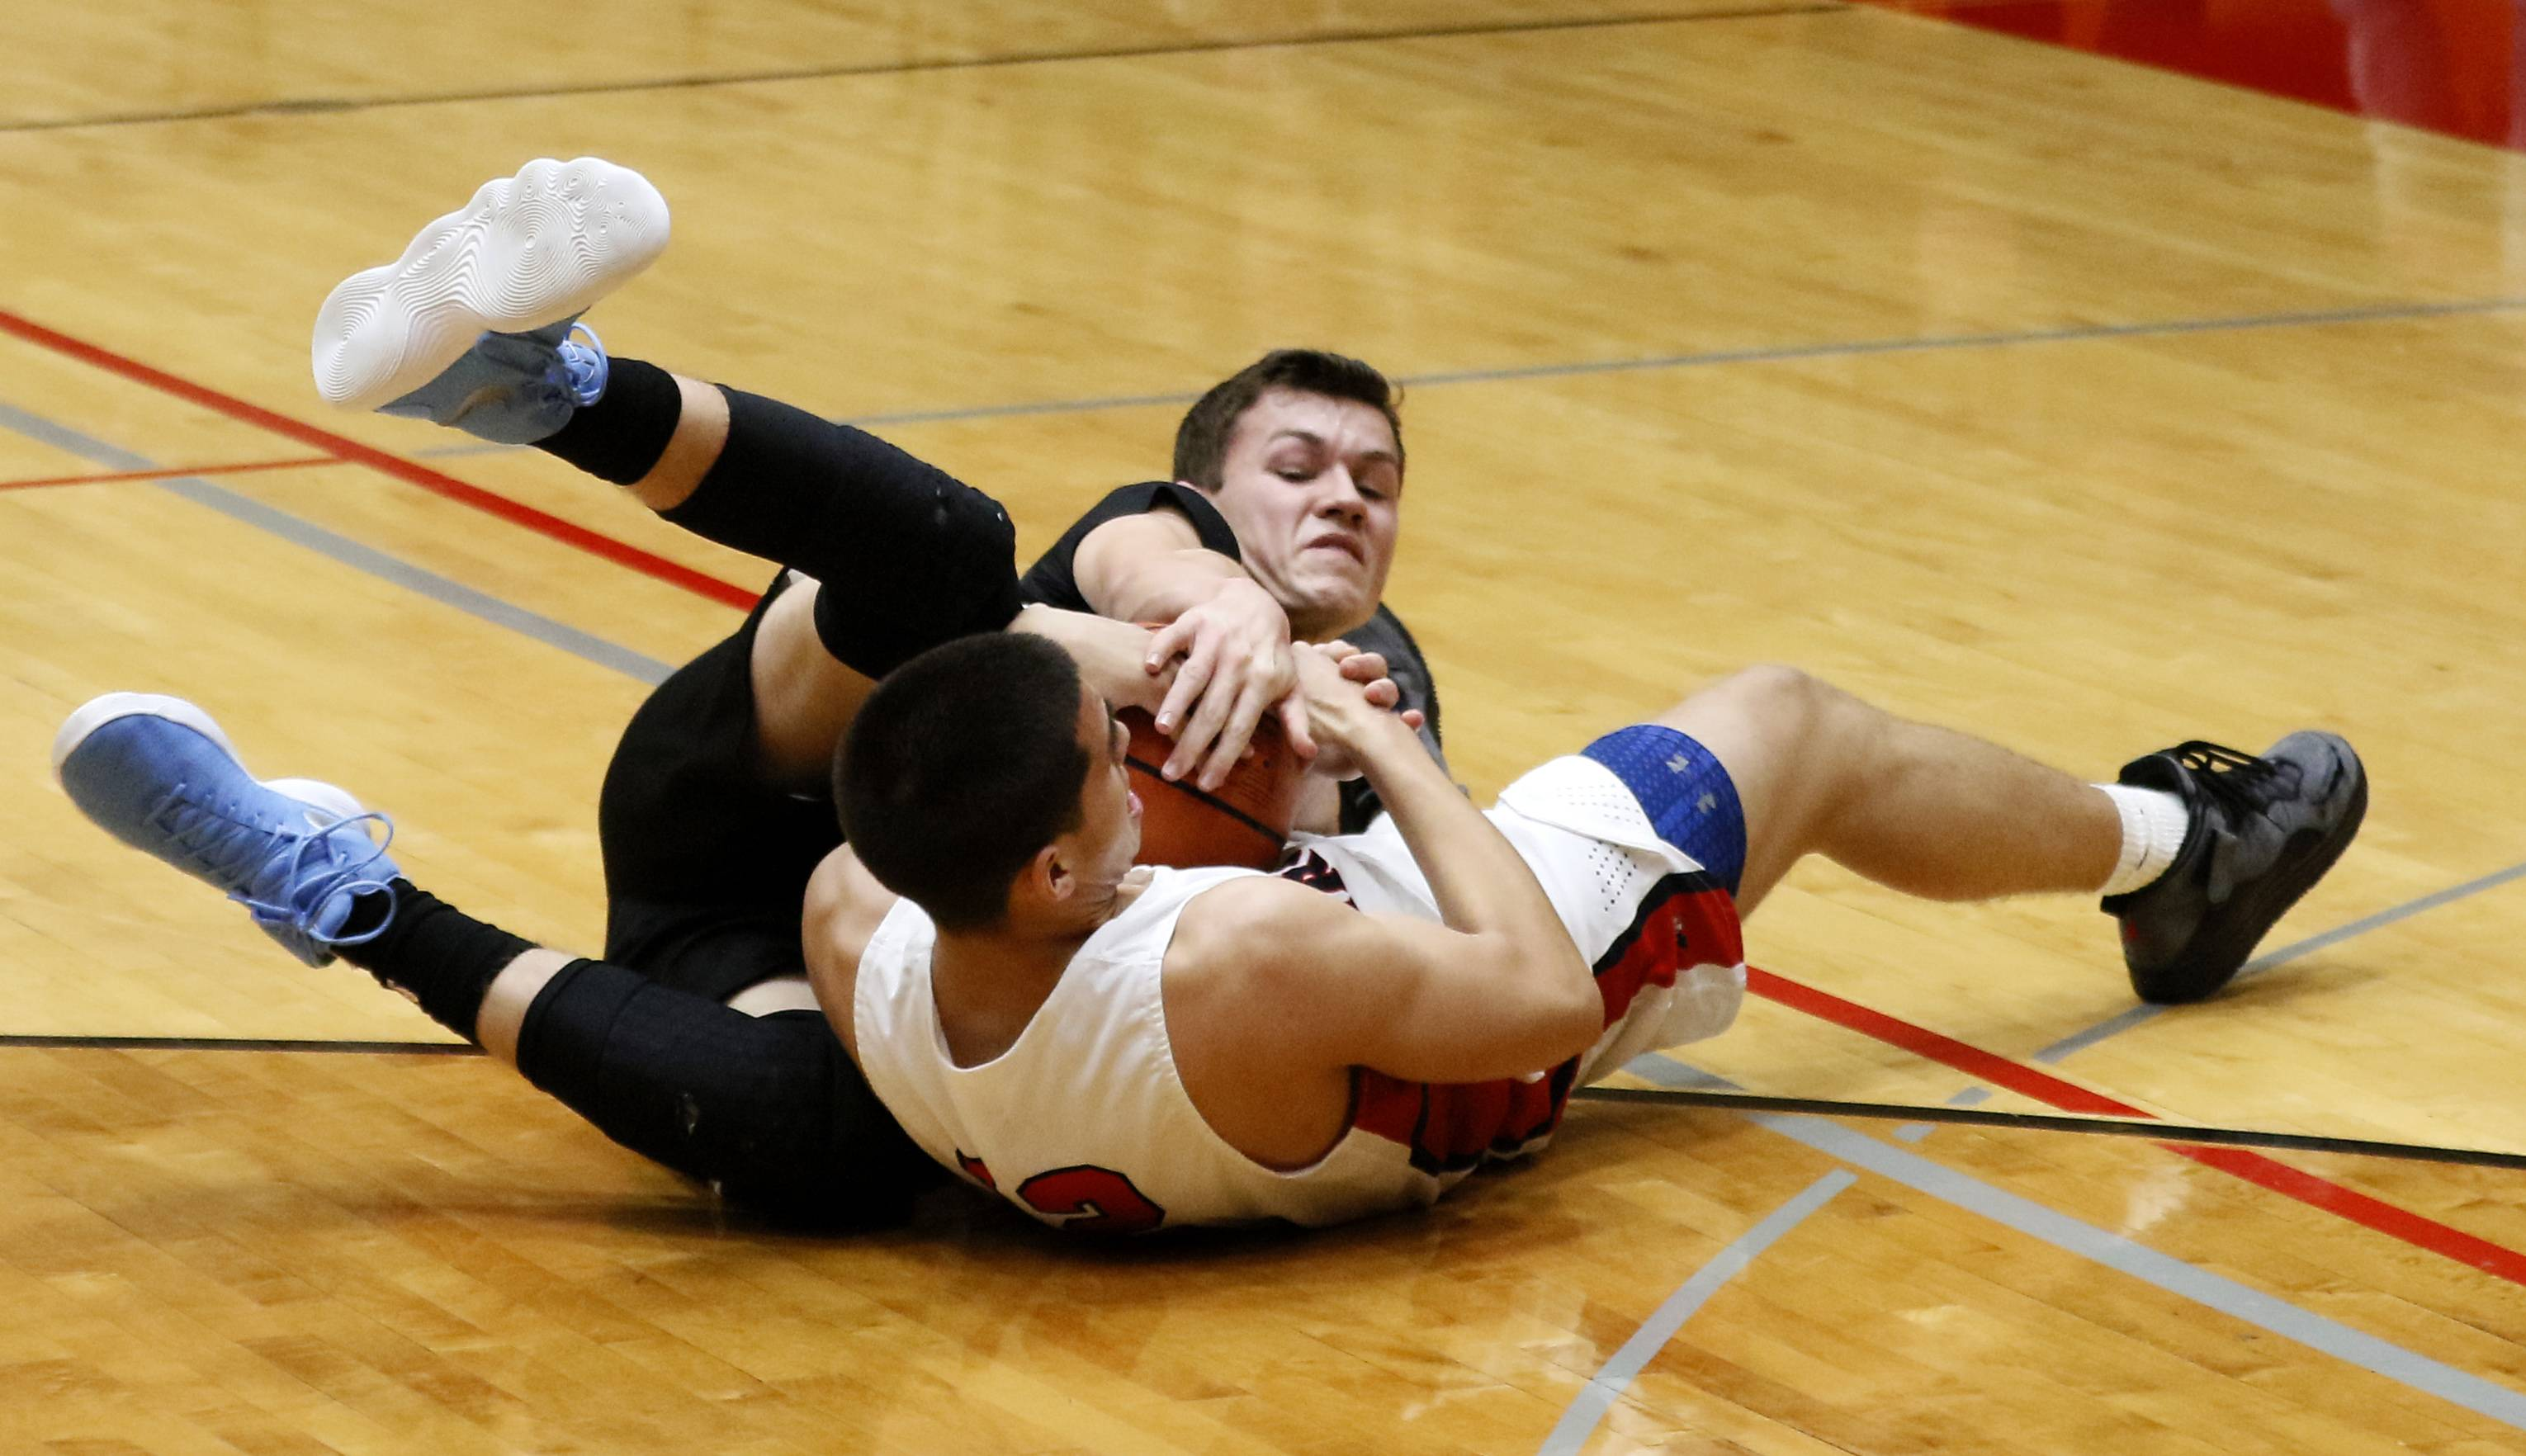 Willowbrook's Ethan Chuemer, behind, battles for a loose ball with West Aurora's Damian Virgen, right, during the 25th annual Jim & Sylvia Roberts Night of Hoops boys basketball game at Batavia High School.